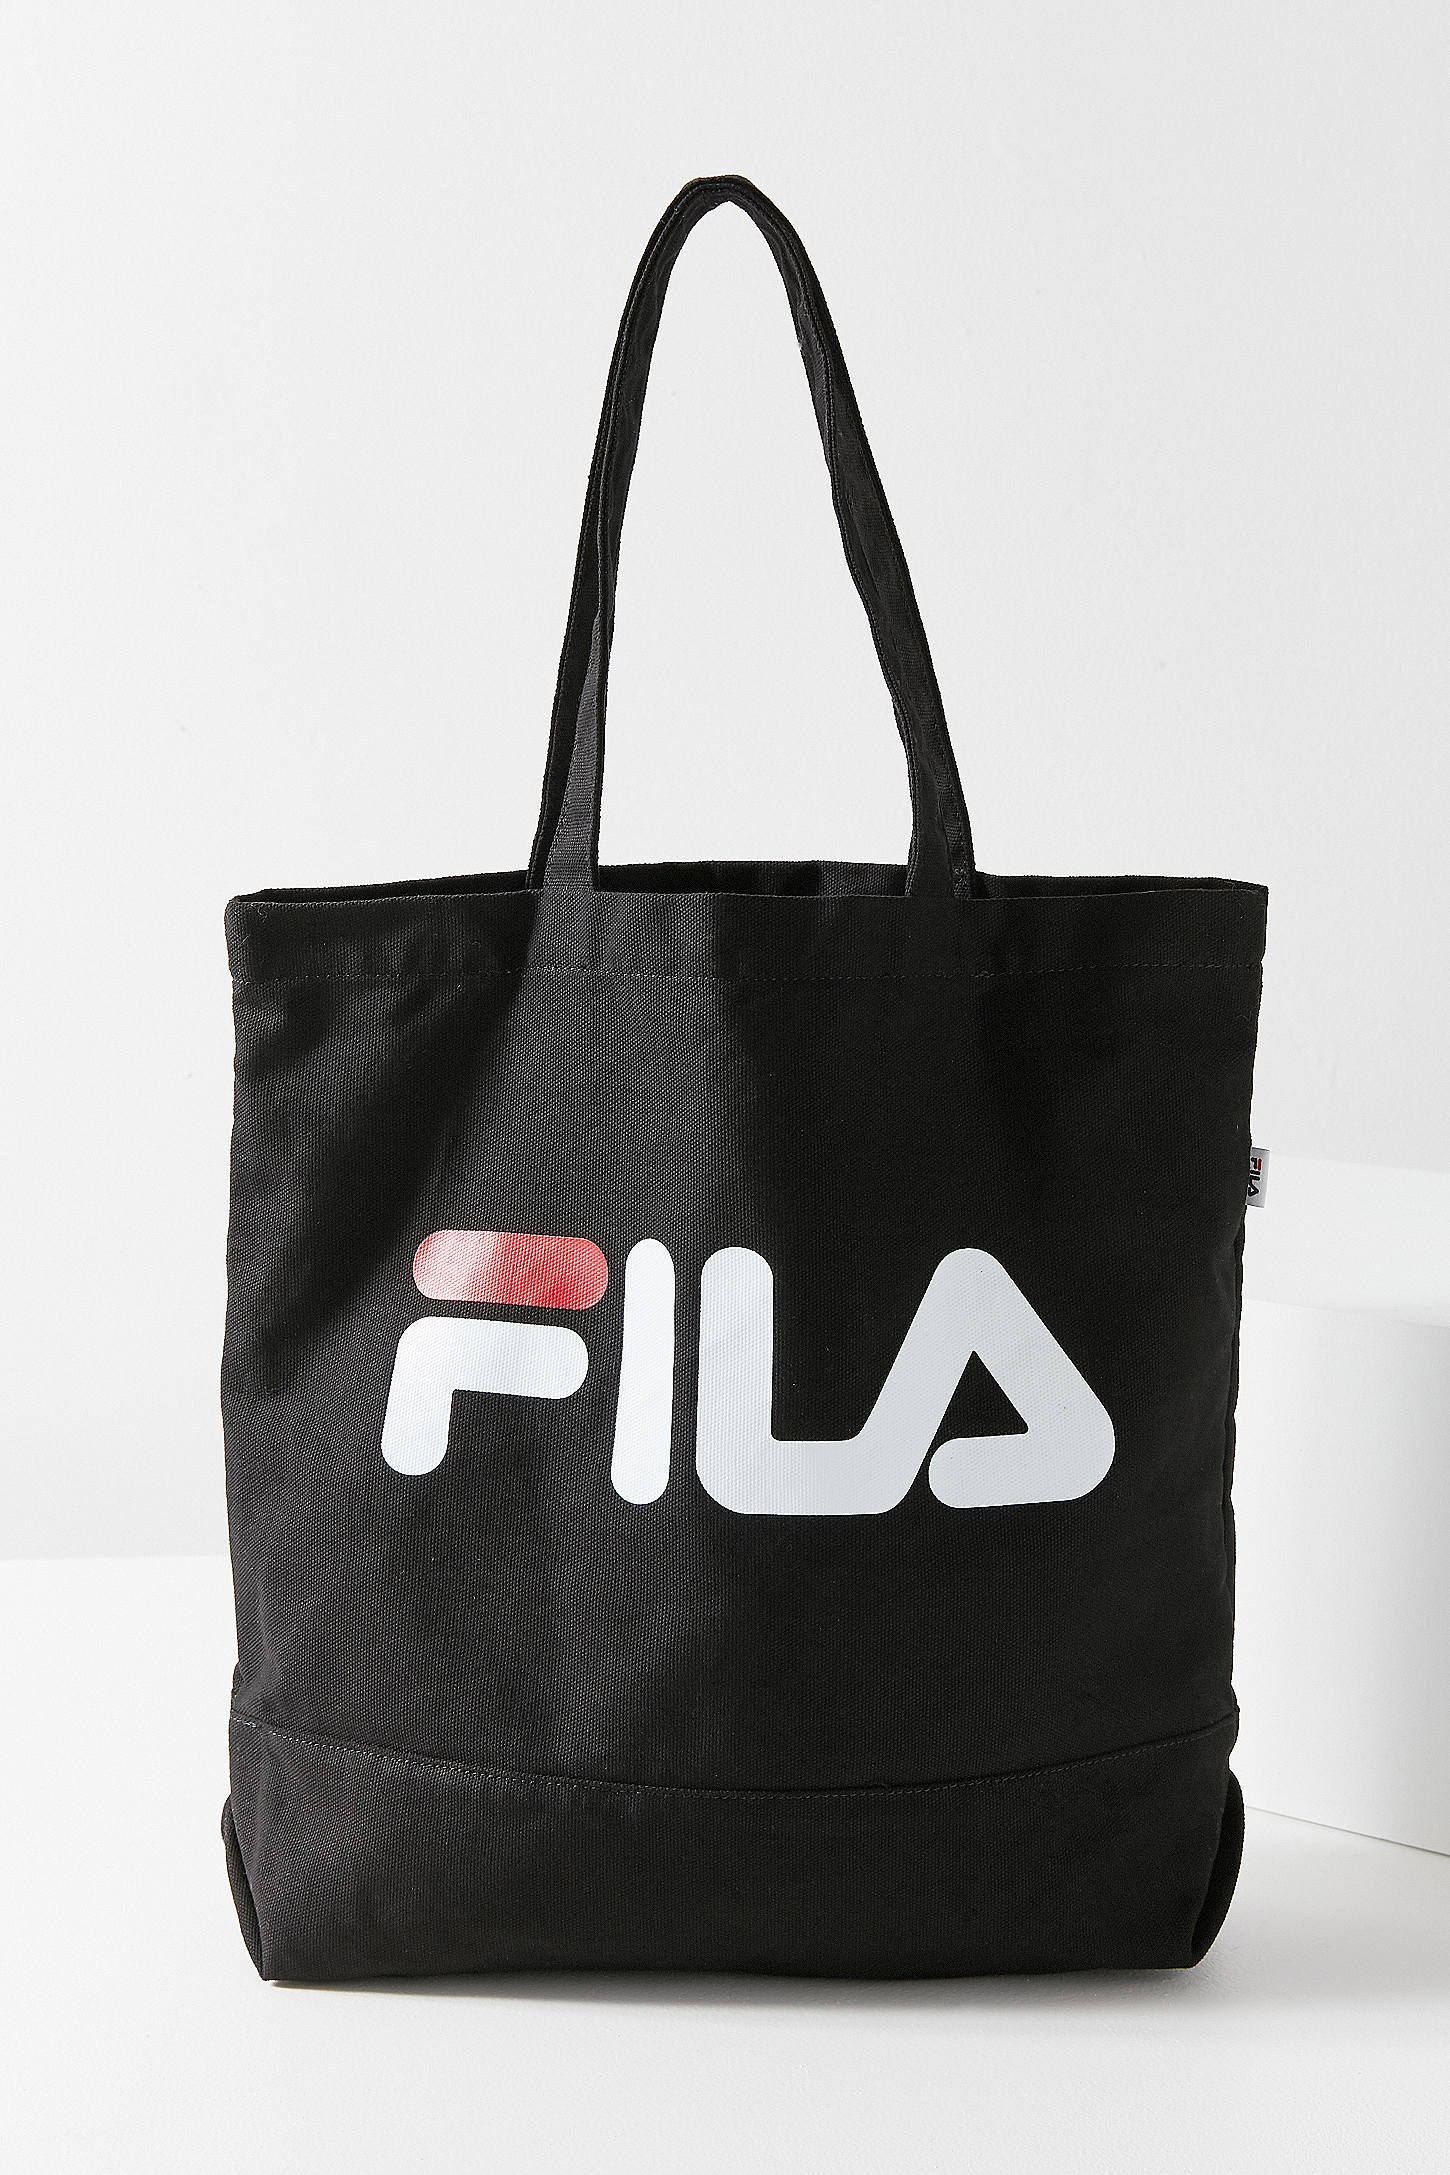 Shop FILA Canvas Tote Bag at Urban Outfitters today. We carry all the  latest styles f8f7537291e3